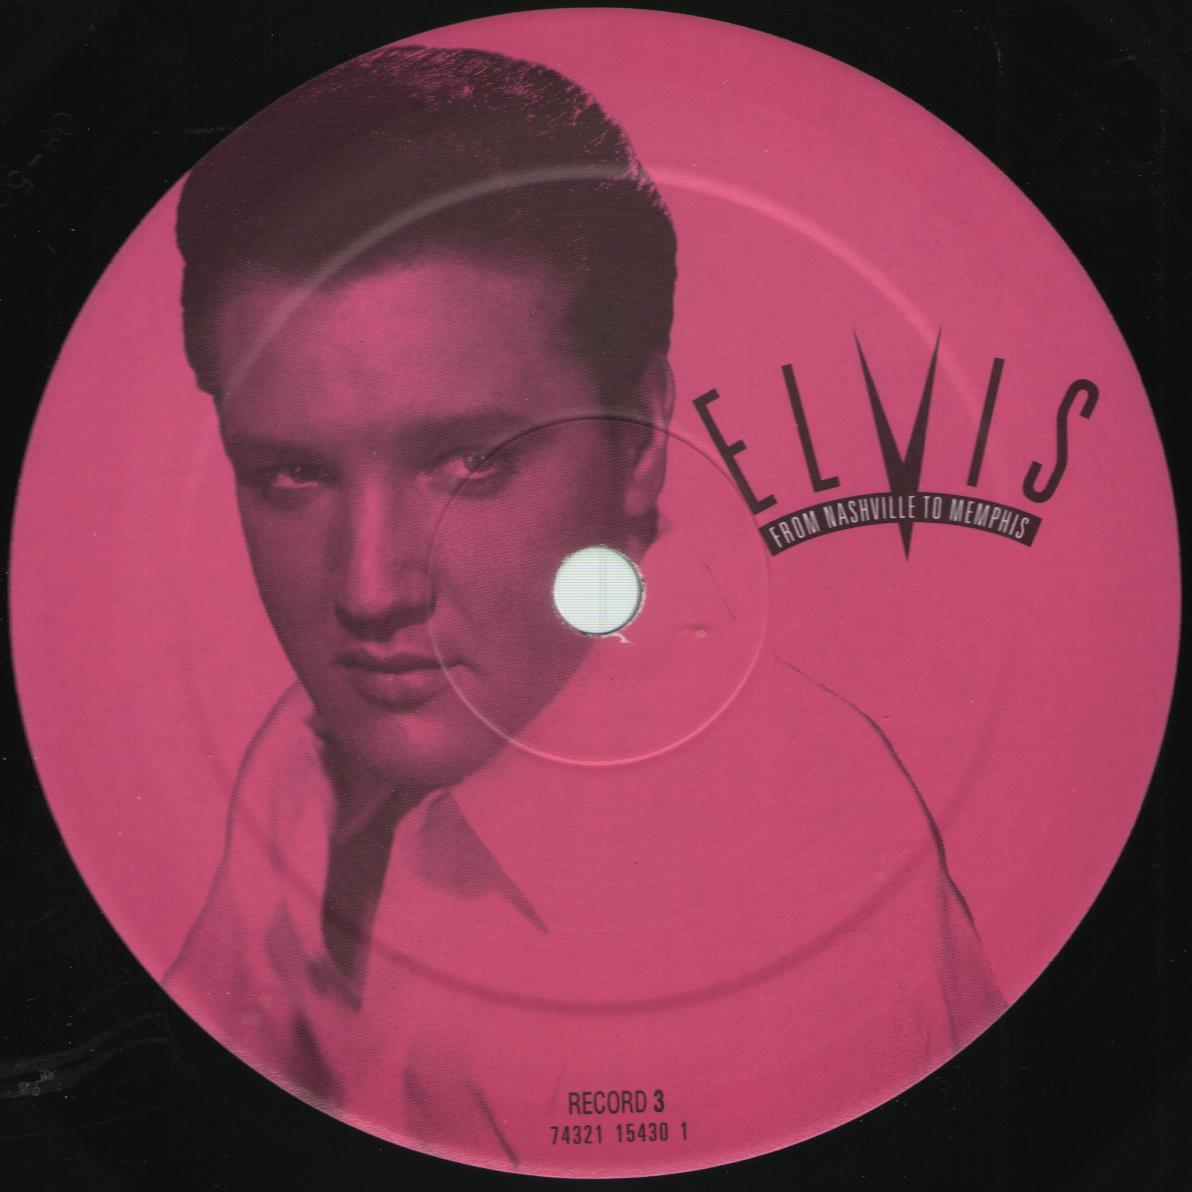 ELVIS - FROM NASHVILLE TO MEMPHIS - THE ESSENTIAL 60'S MASTERS Bild613s9j